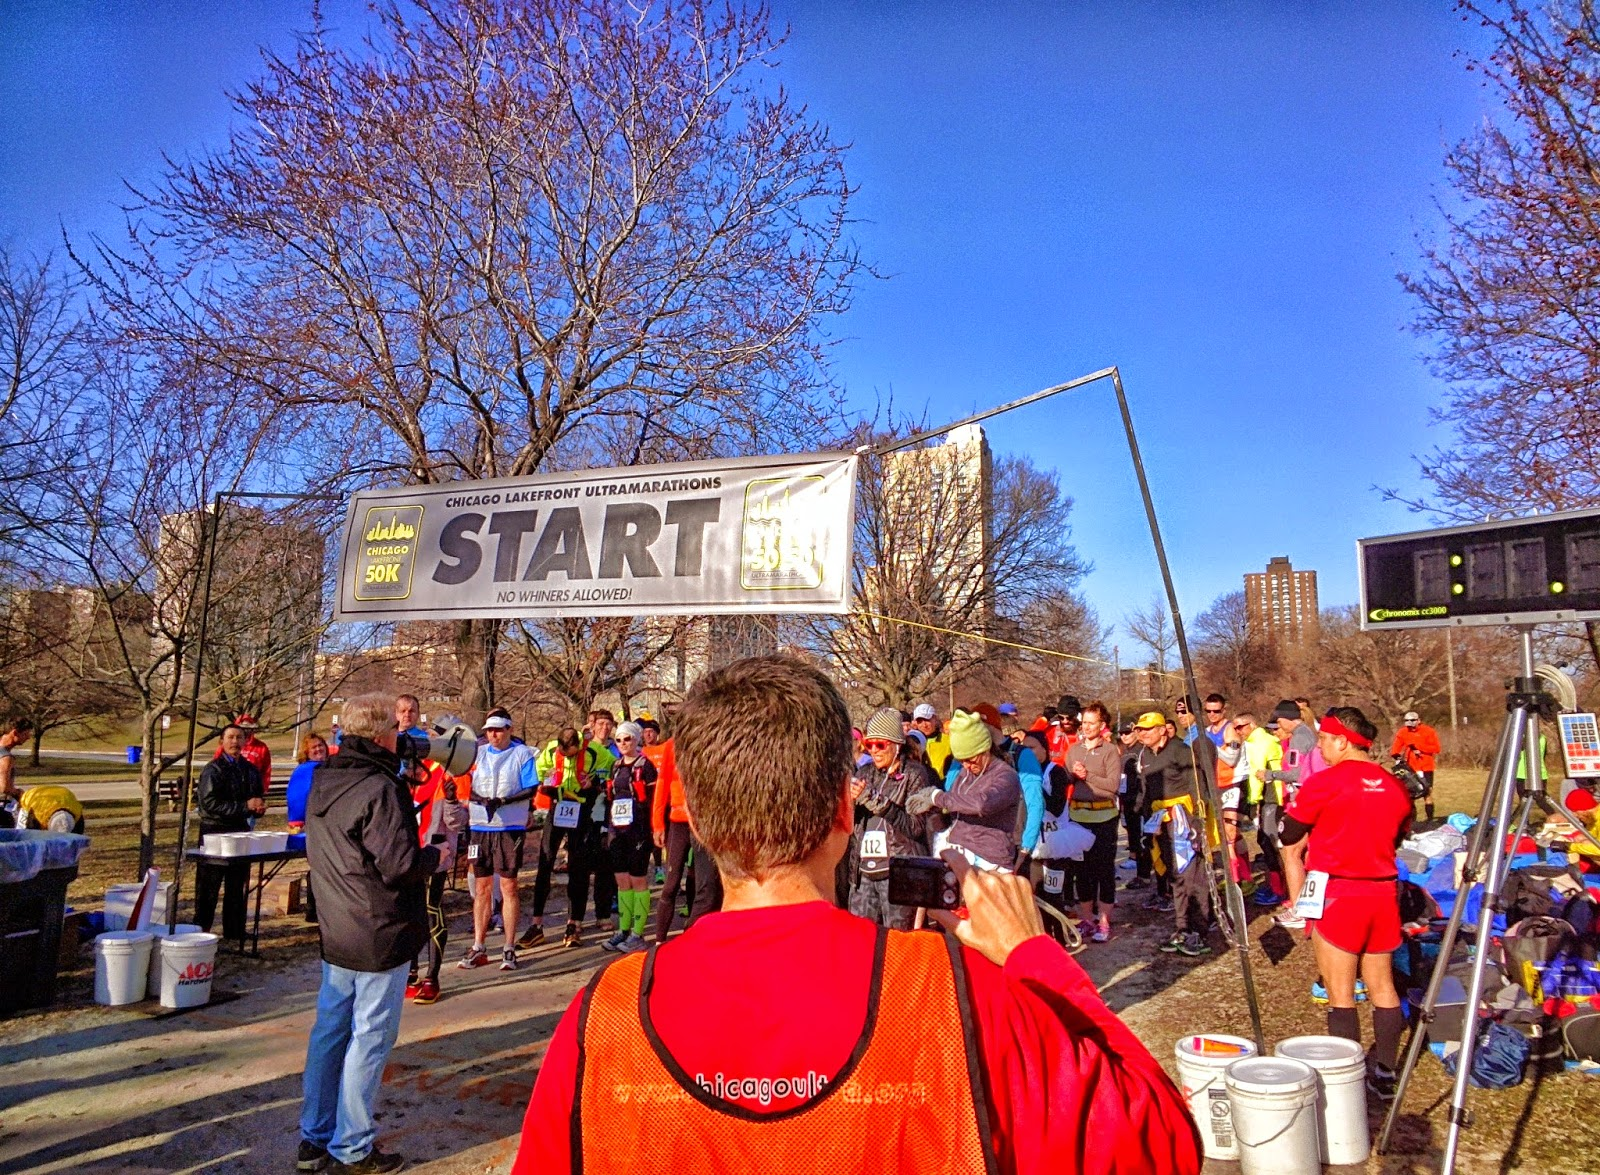 Chicago Lakefront 50K race